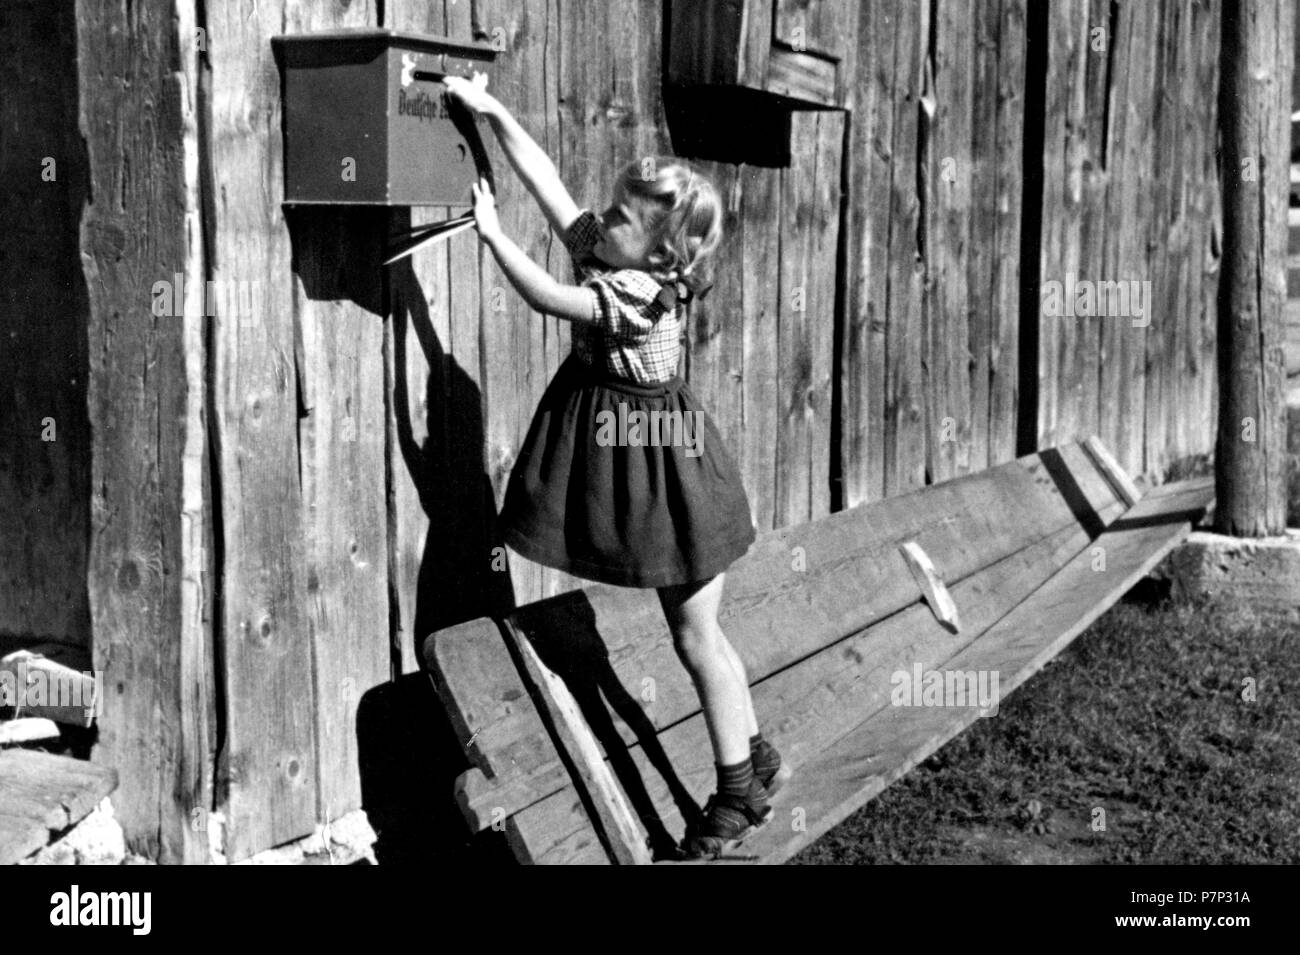 Girl trying to reach mailbox, ca. 1930, exact place unknown, Germany - Stock Image